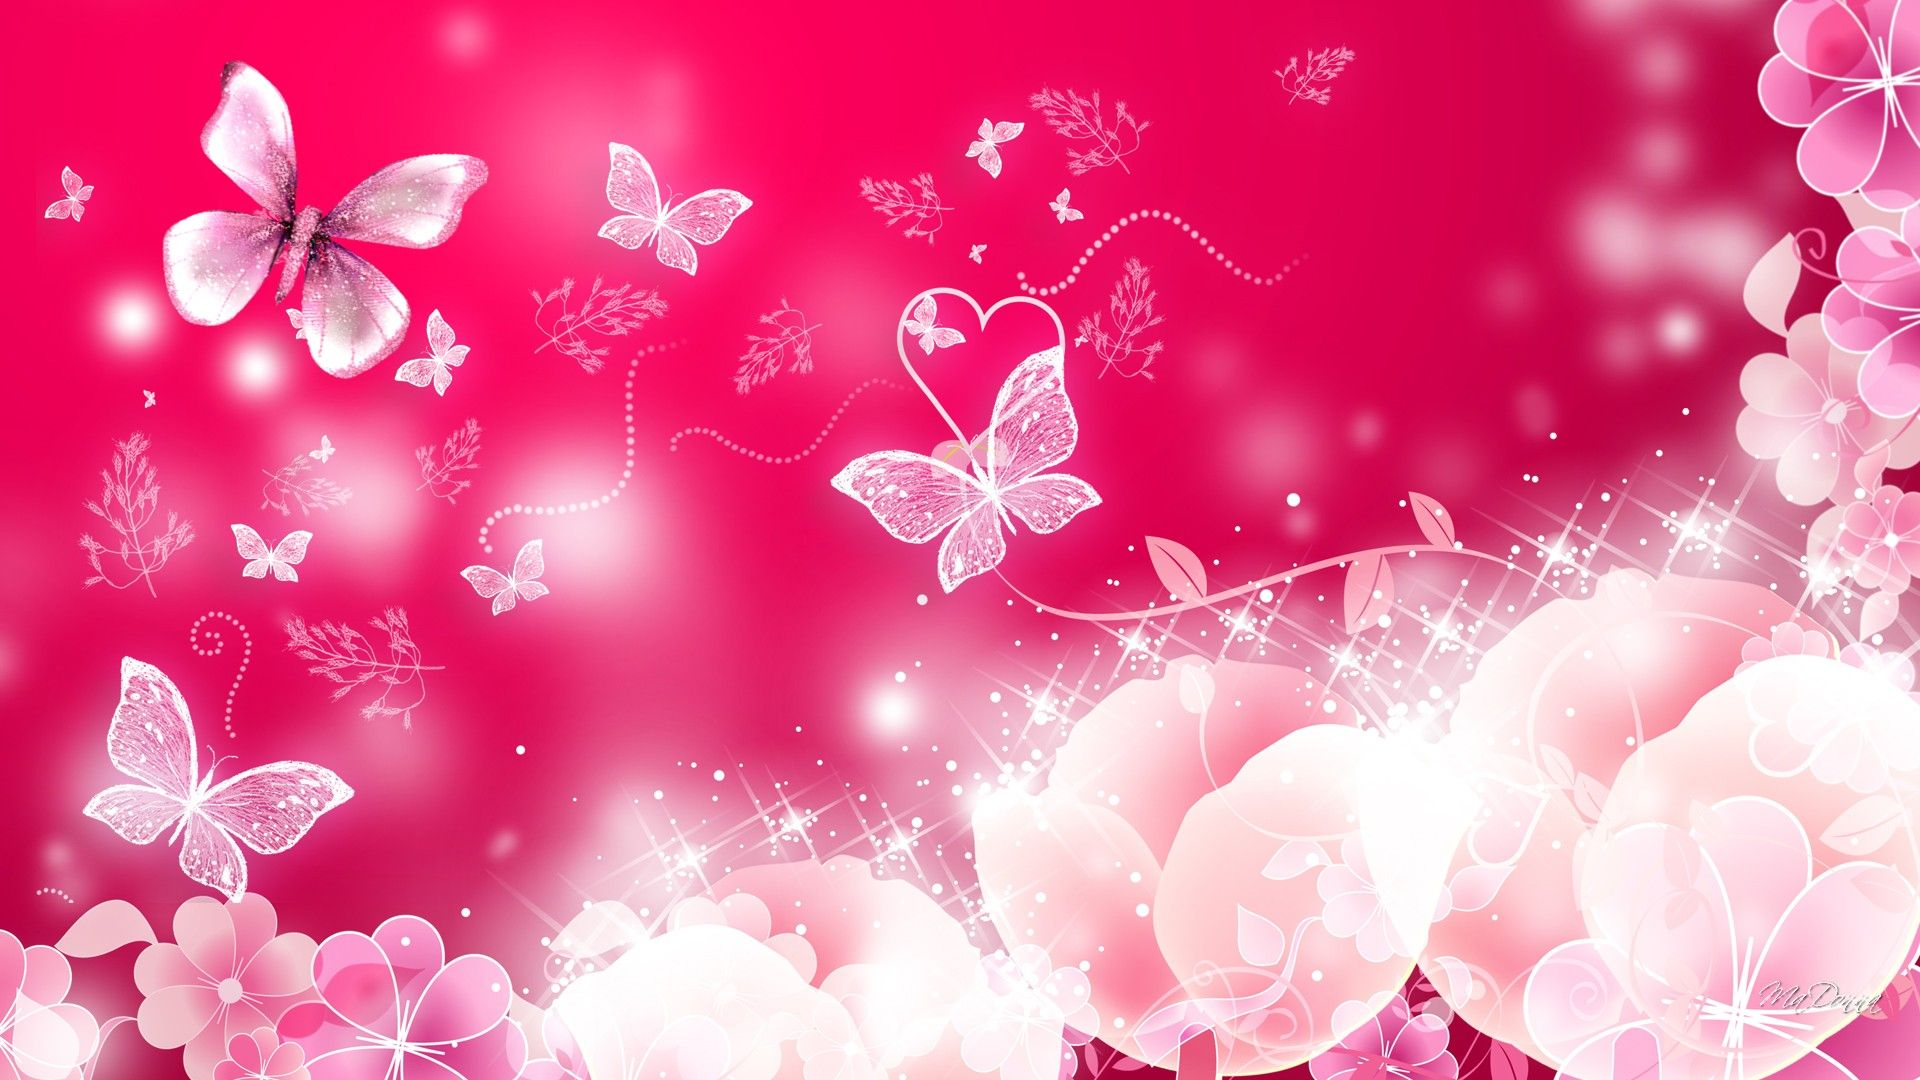 luthfiannisahay: Iphone Pink Glitter Butterfly Wallpaper Gif